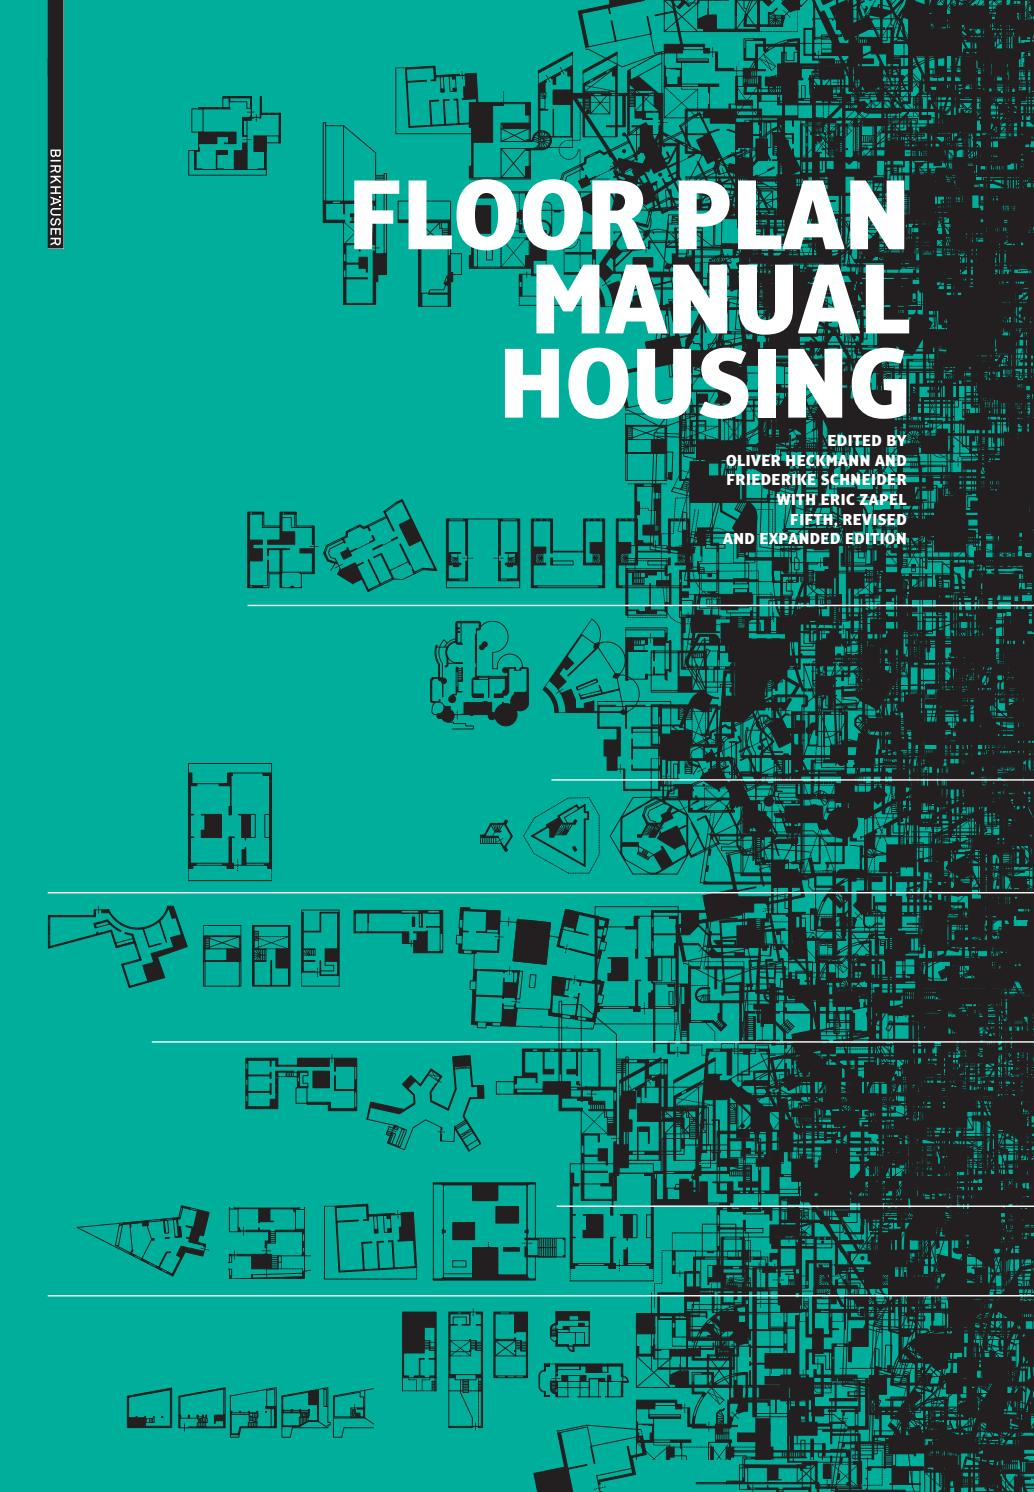 Floor Plan Manual Housing 5th Edition By Birkhauser Issuu